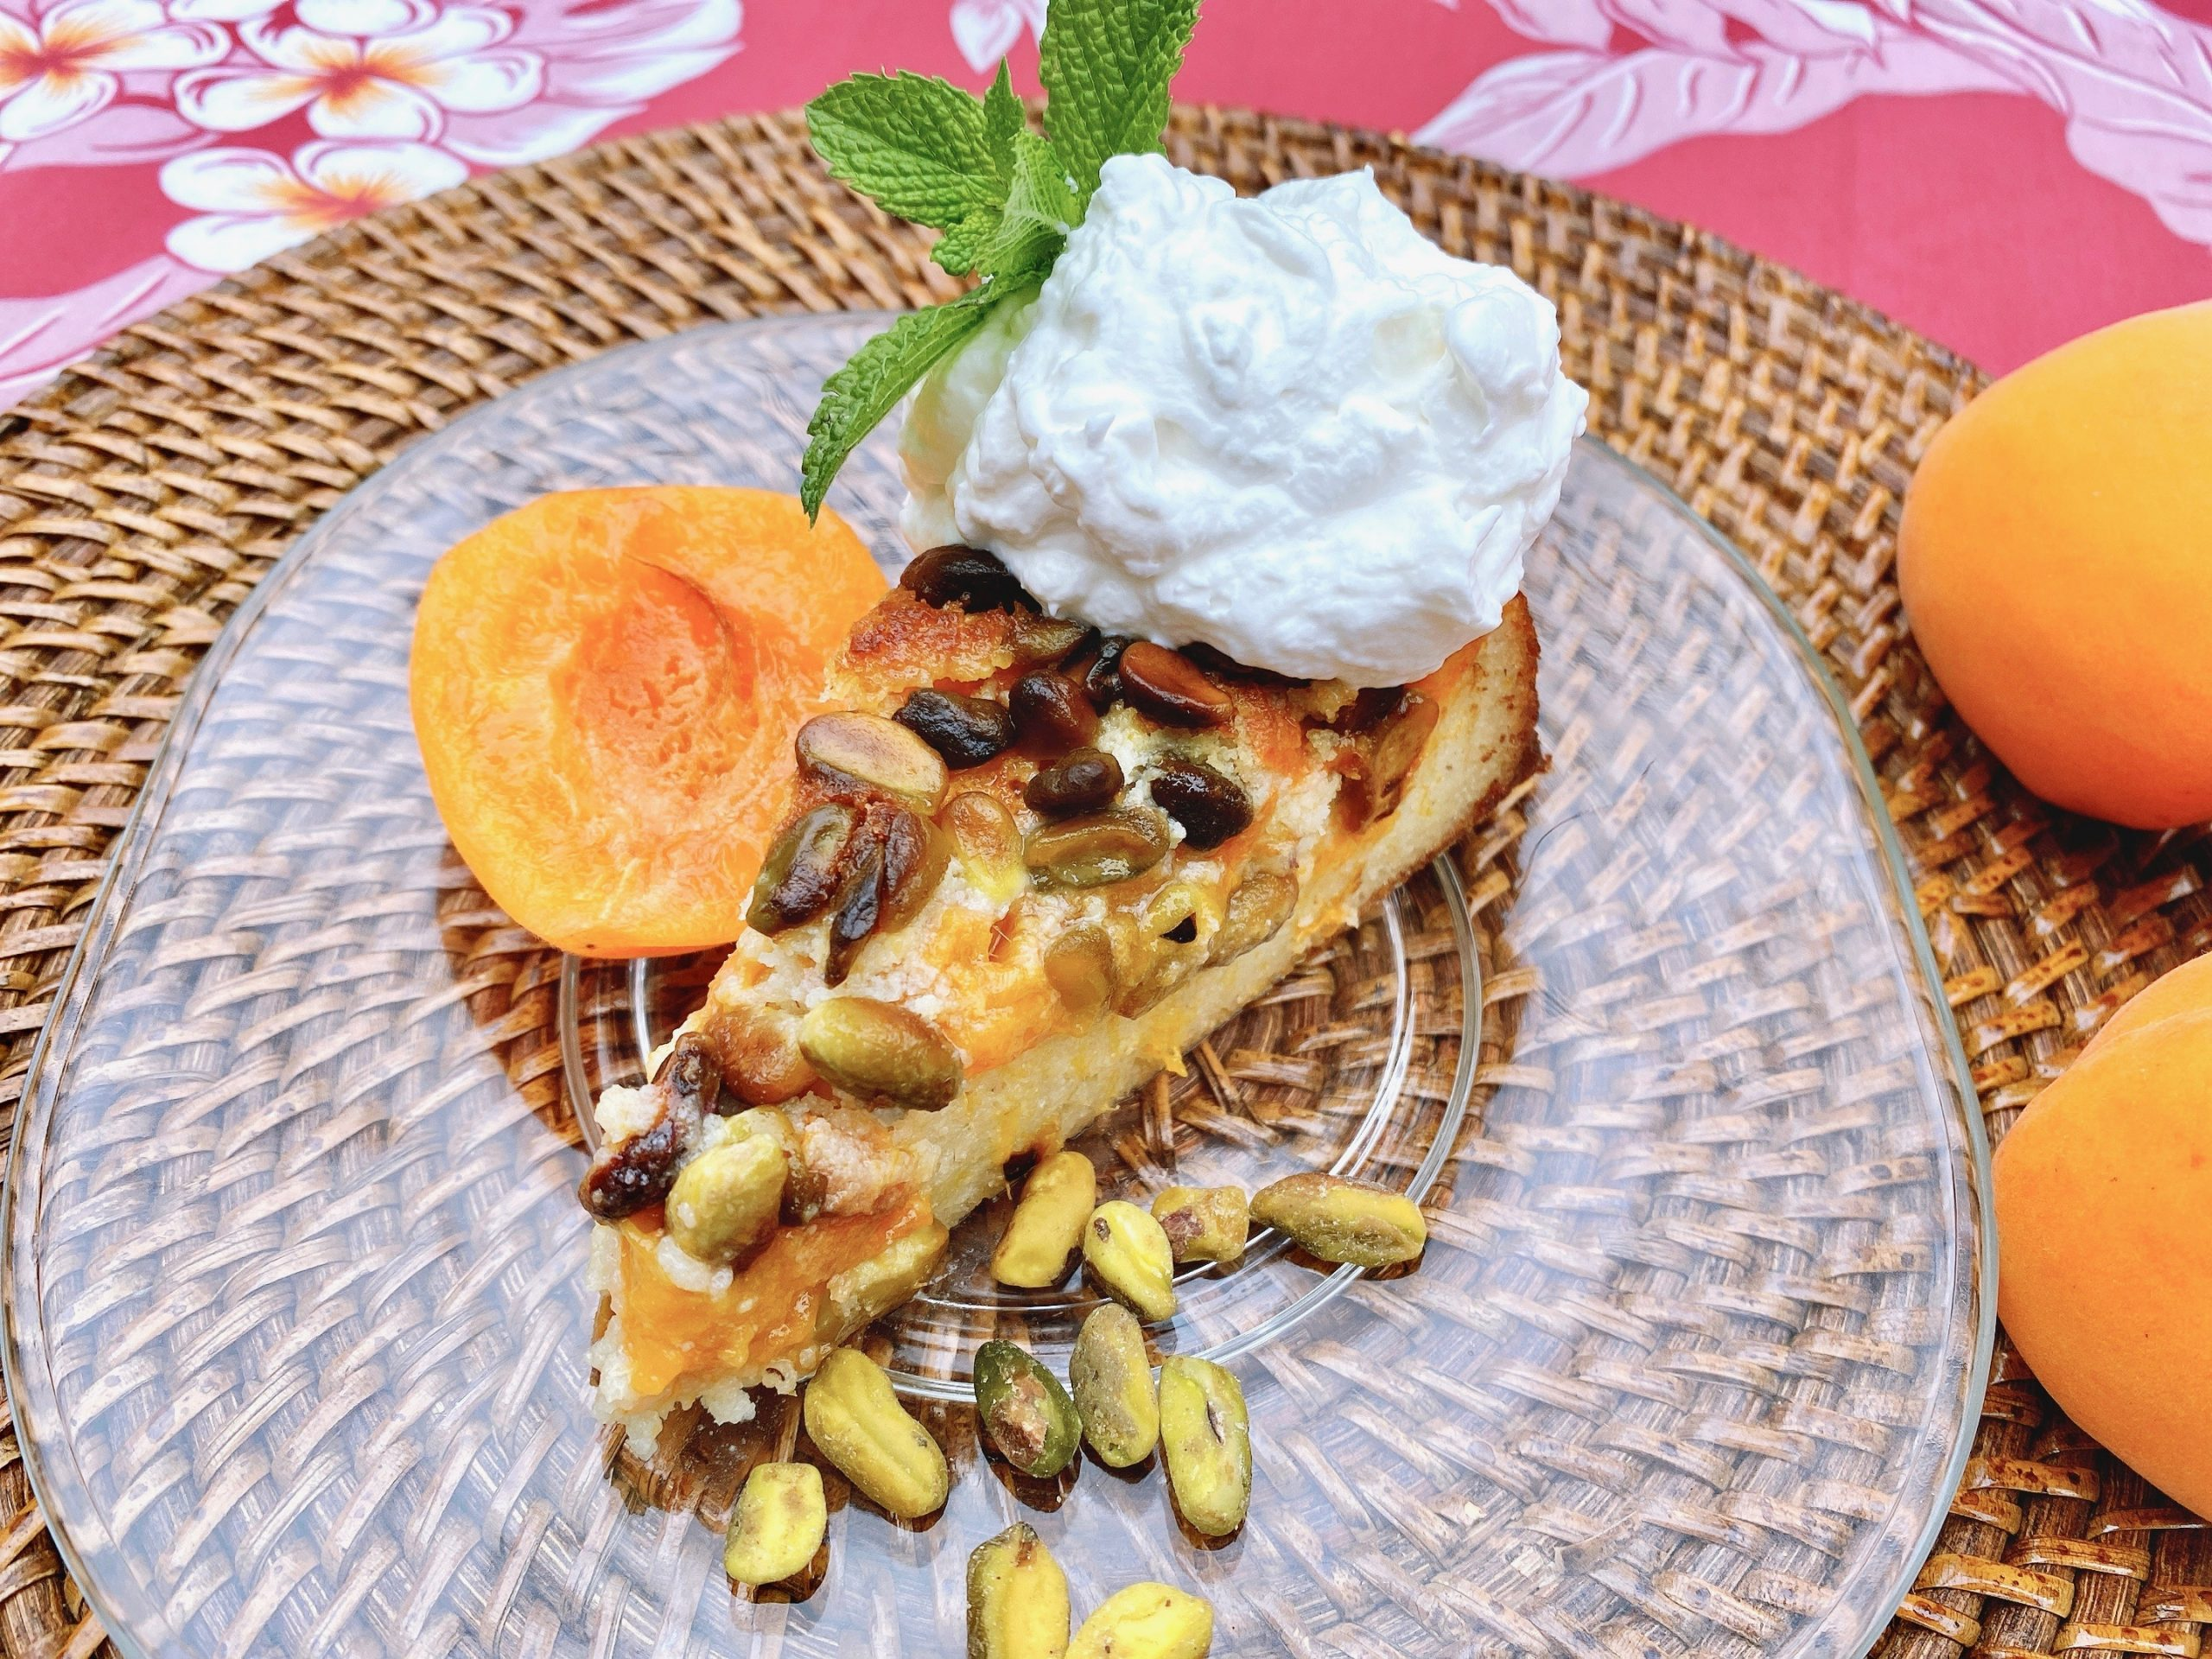 Slice of Apricot Pistachio Cake with Amaretto and a dollop of whipped cream.